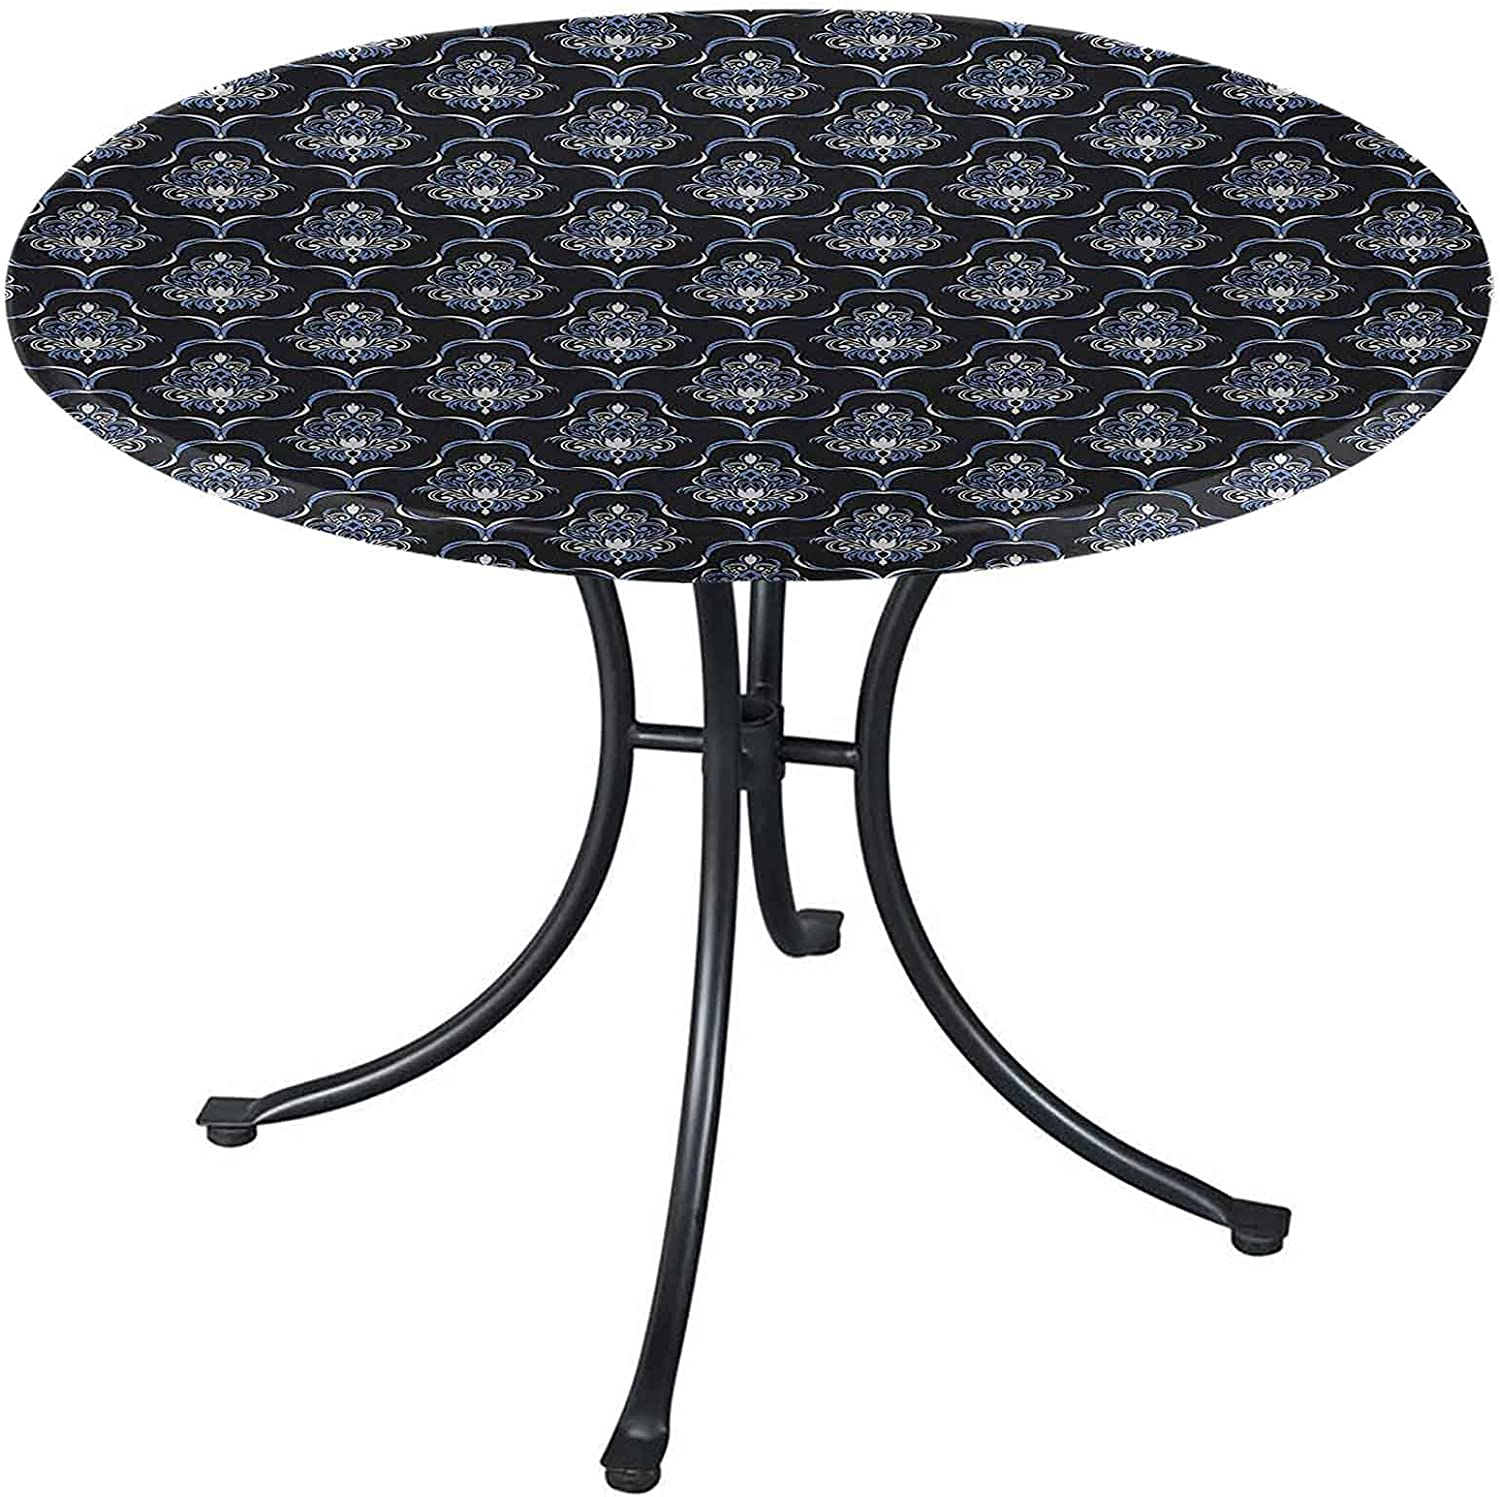 Dark Blue Round Table Cover 54